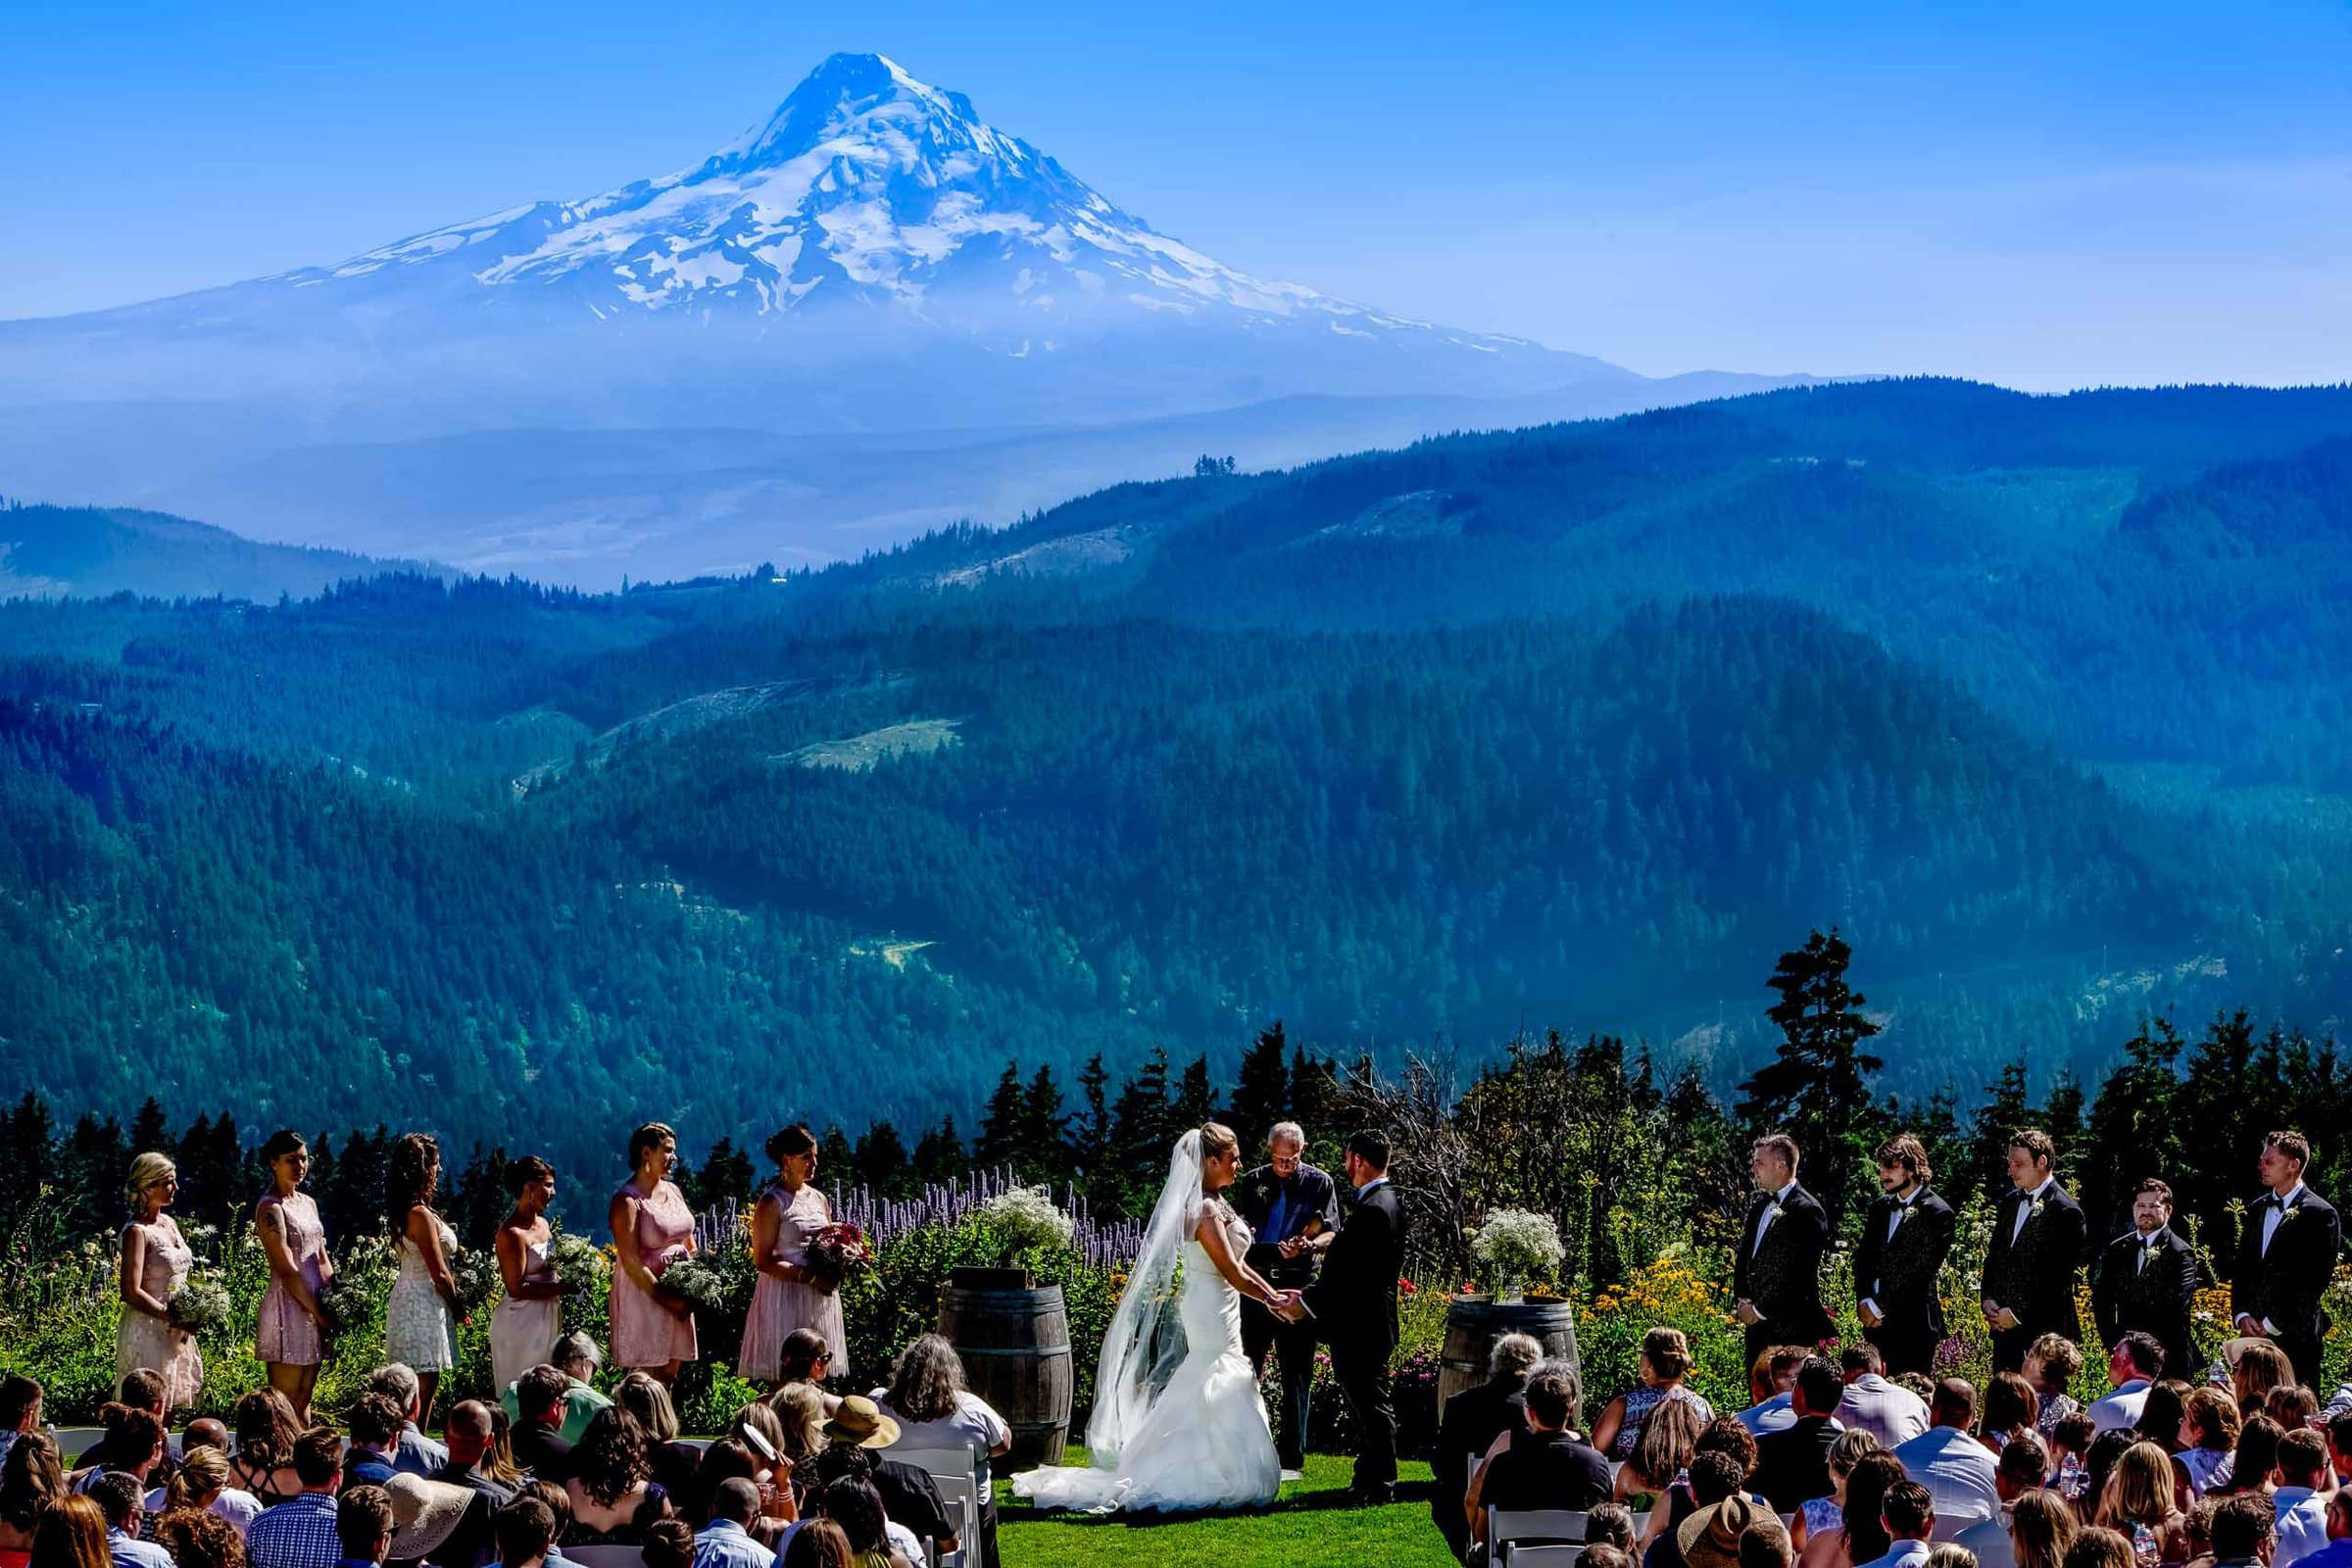 Perfect wedding venue option for COVID-19 with indoor and outdoor options. Epic views of Mt Hood and Columbia River Gorge.